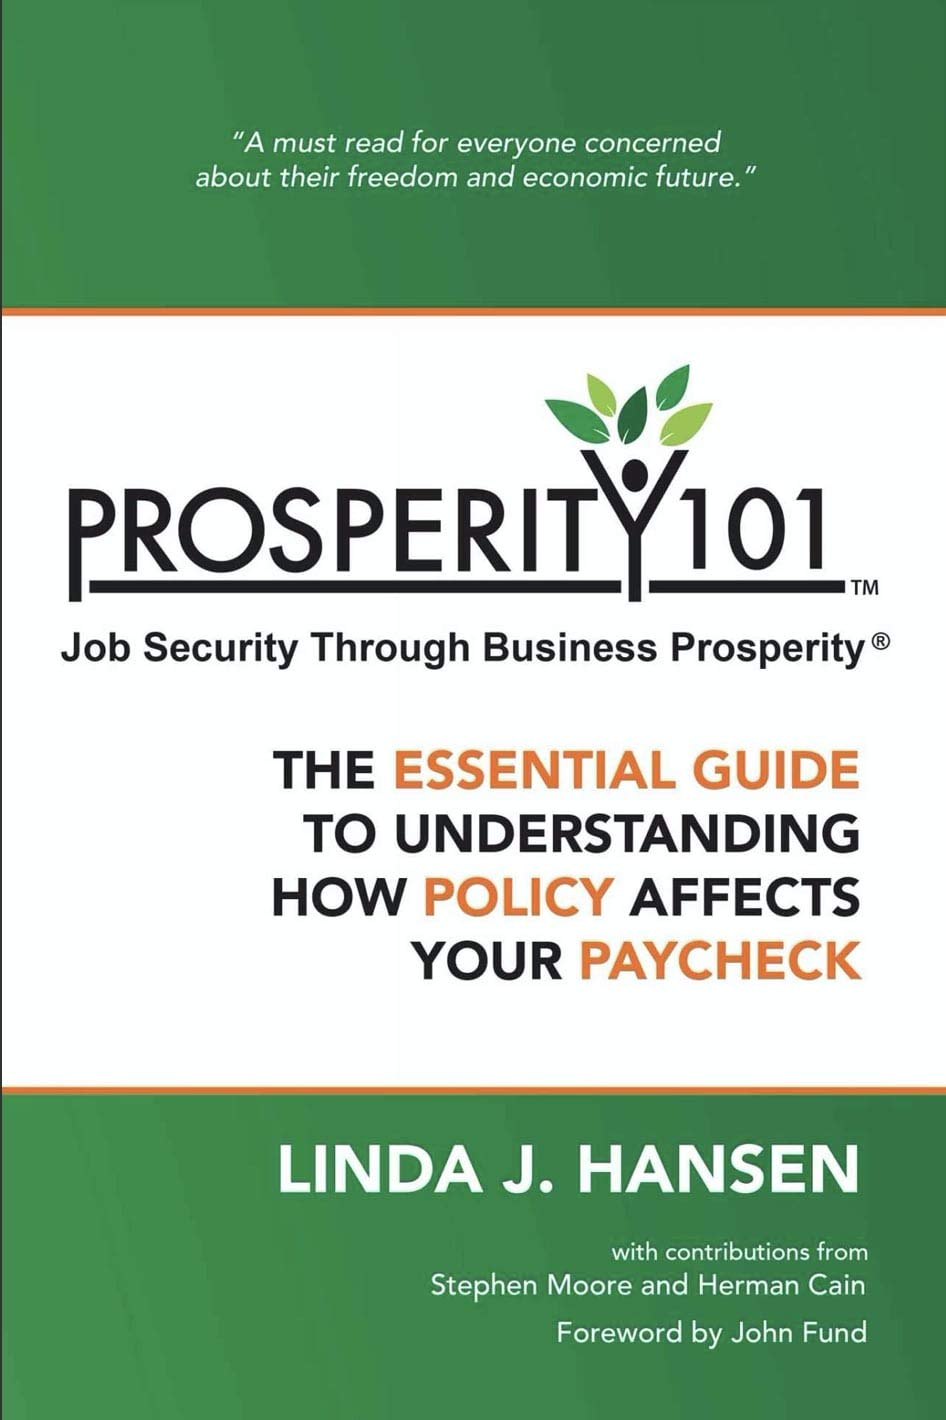 Prosperity 101™ - Job Security Through Business Prosperity®: The Essential Guide to Understanding How Policy Affects Your Paycheck